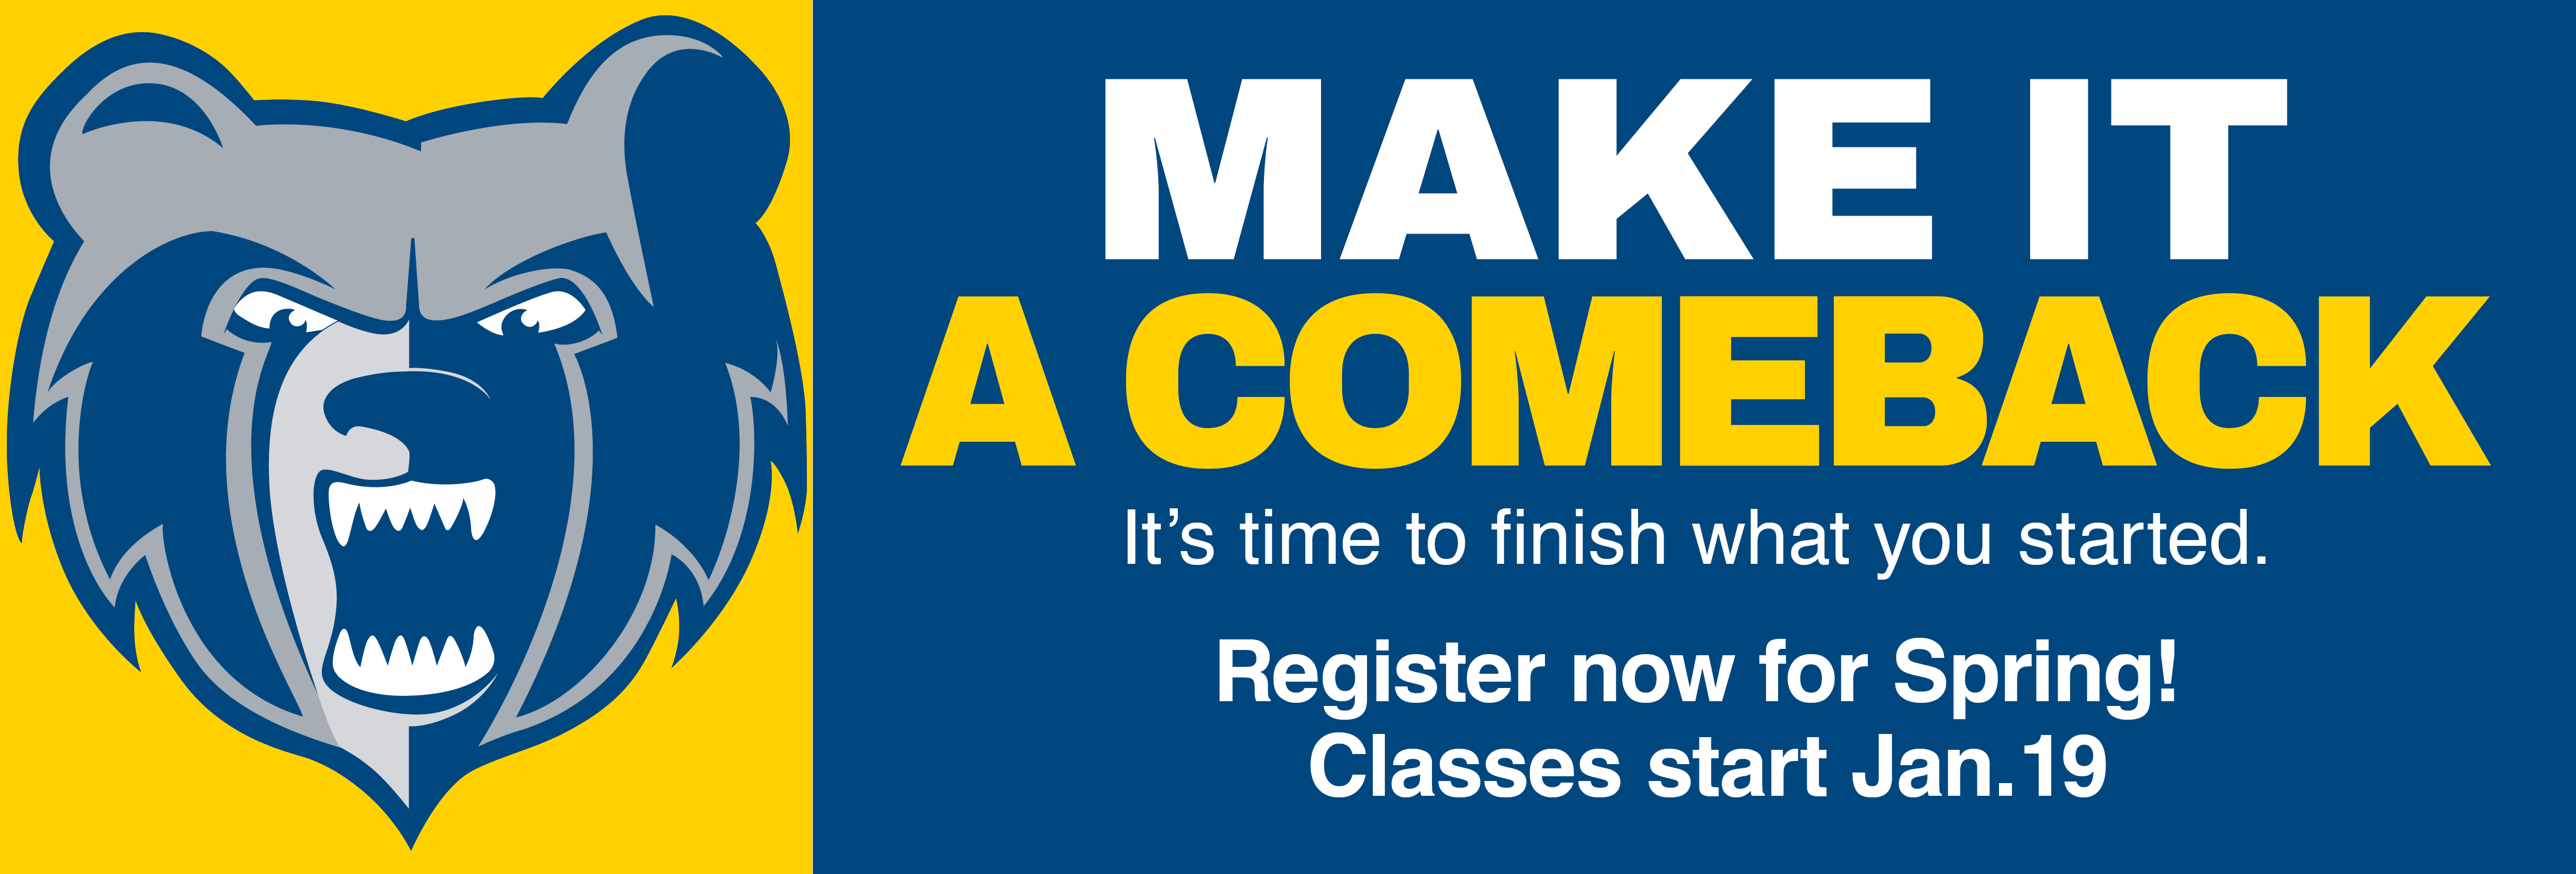 """A text slide with the KCC logo and text that reads """"Make it a comeback. It's time to finish what you started. Registration for spring classes starts Jan. 19."""""""